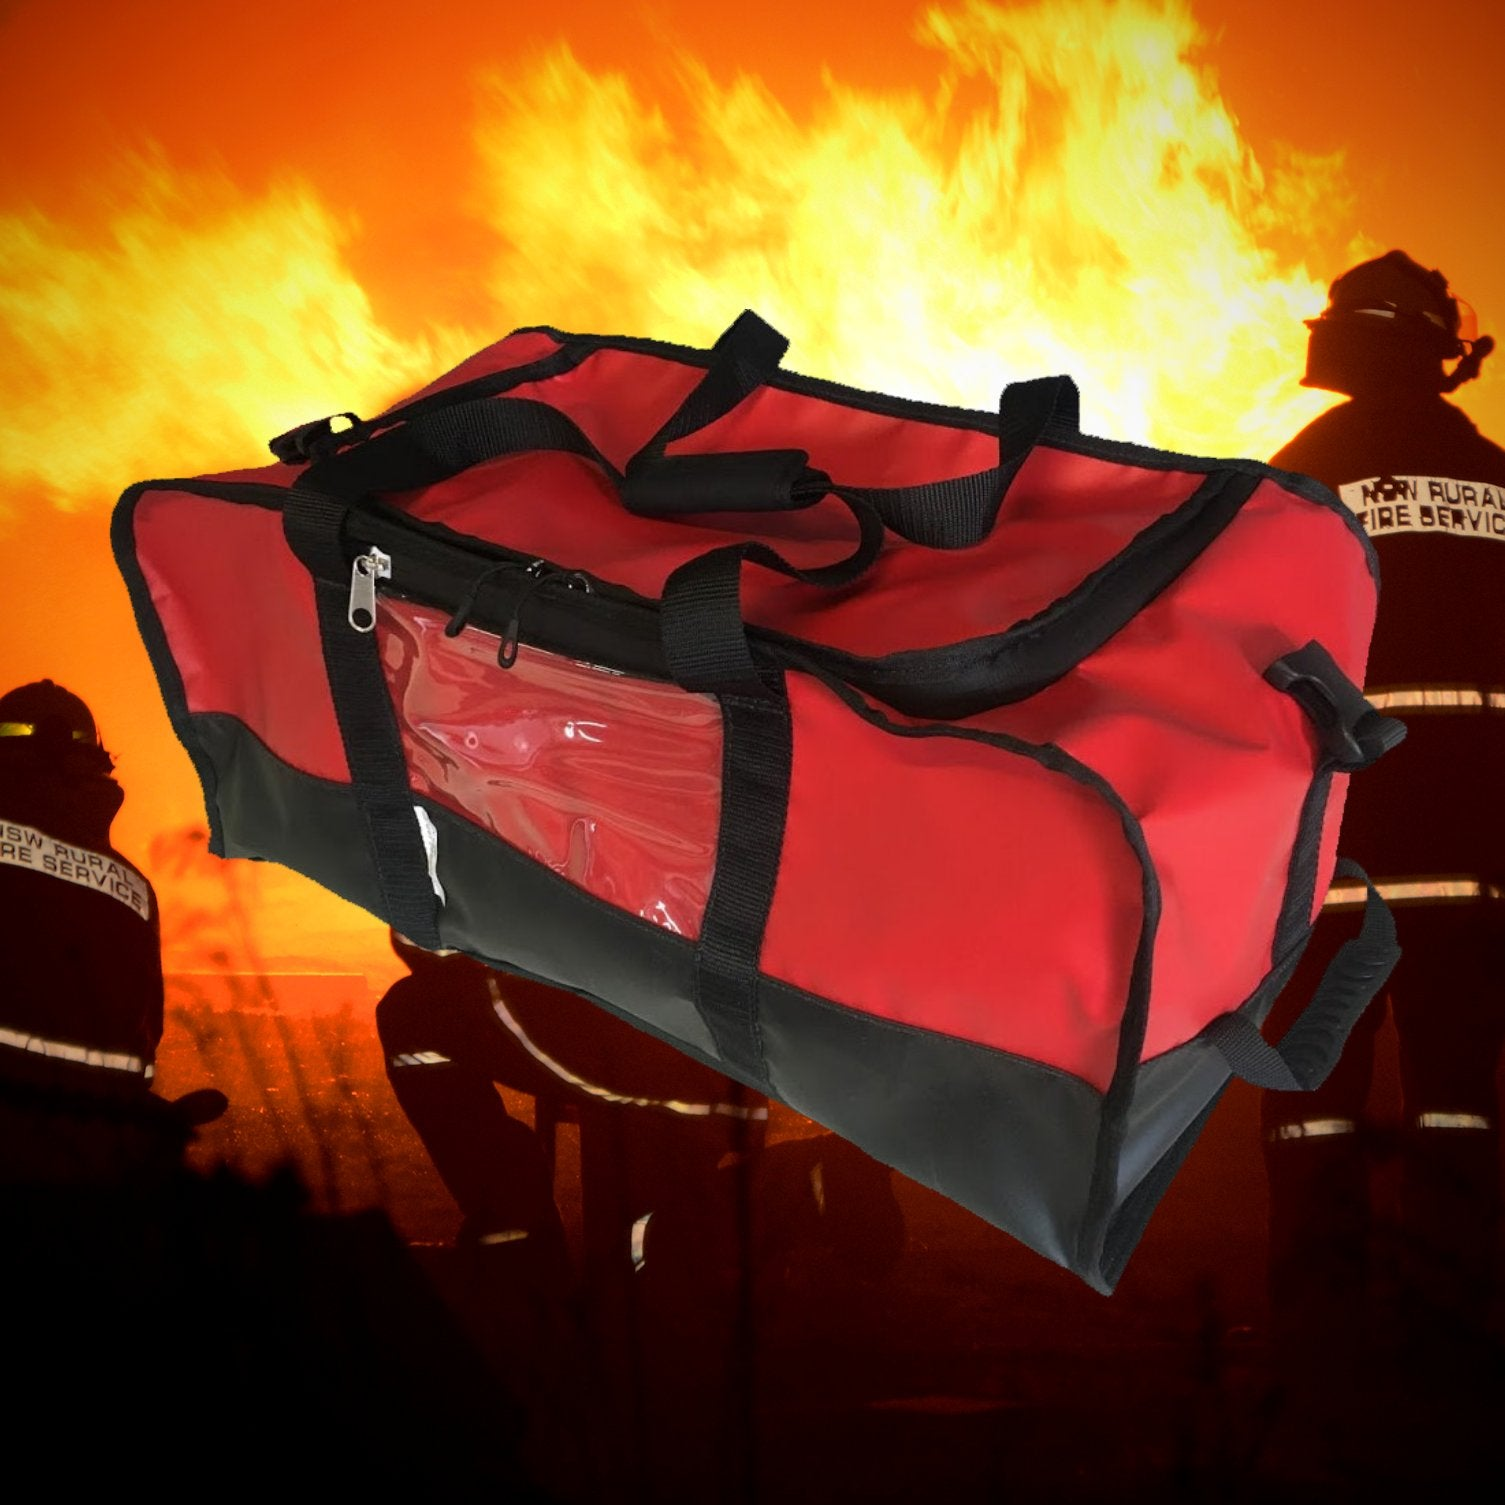 Emergency Services Gear bags